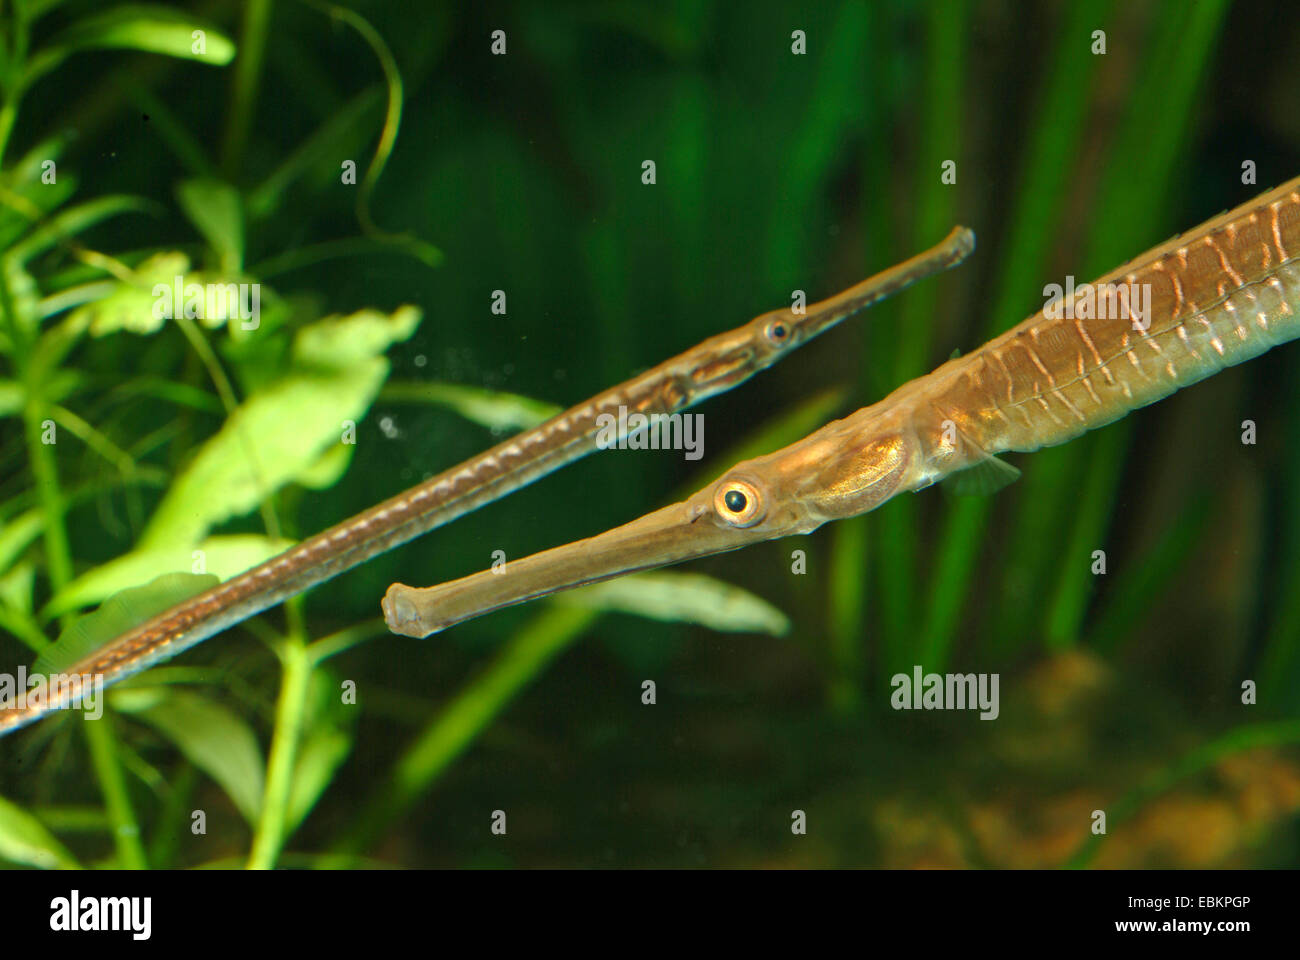 Long-snouted pipefish, Freshwater pipefish (Doryichthys boaja, Microphis boaja), two Long-snouted pipefishes swimming - Stock Image